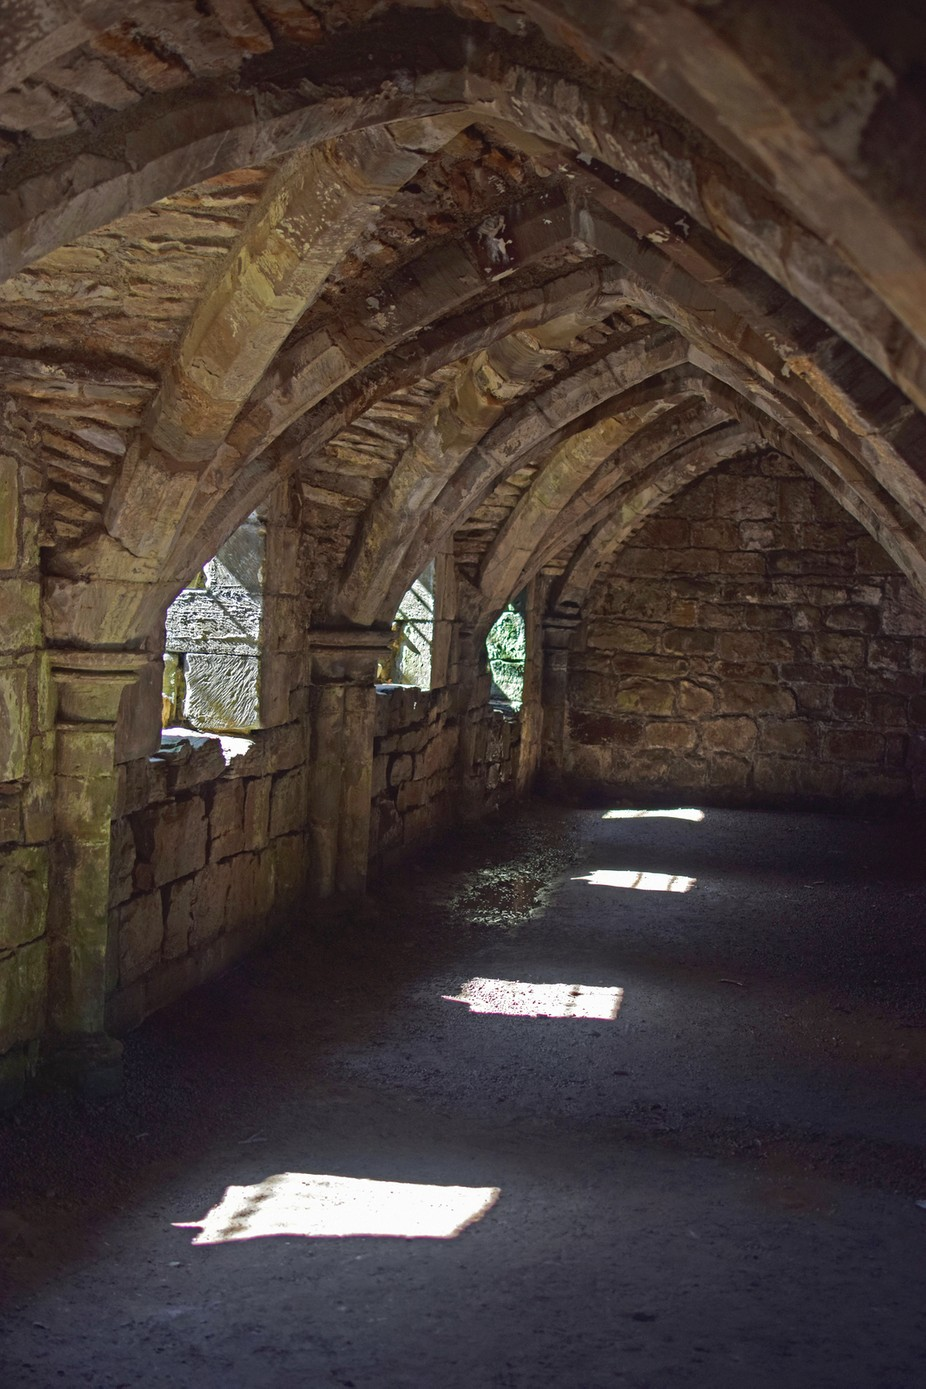 The Crypt, Finchale Priory